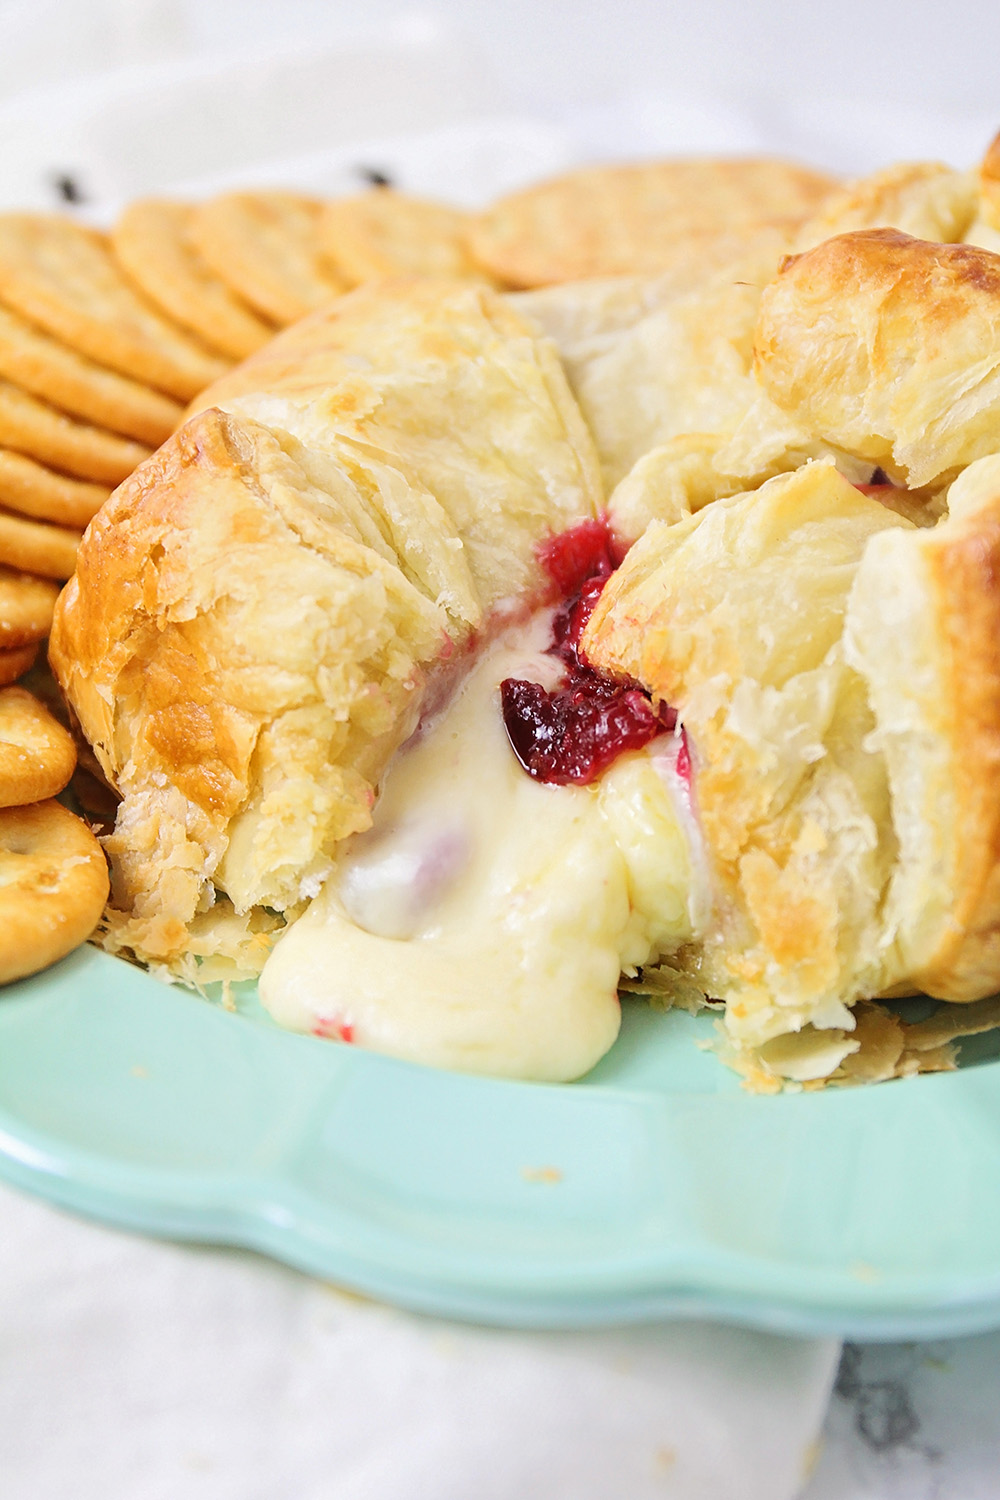 This gooey and melty cranberry baked brie is the perfect party appetizer, and so easy to make!